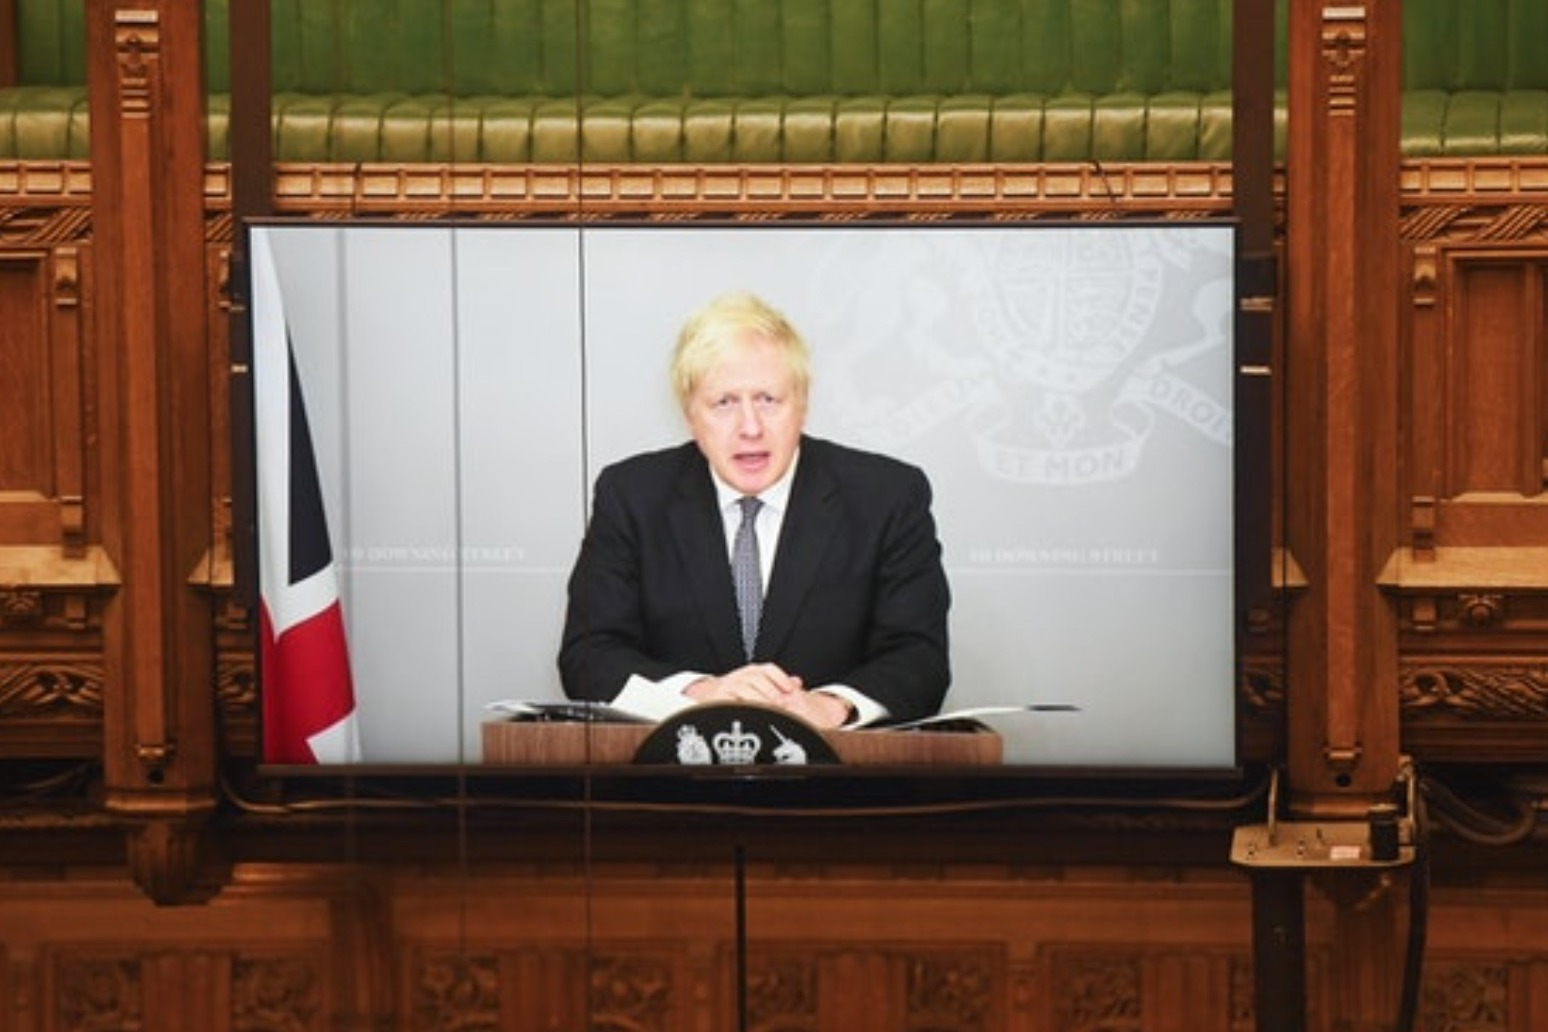 PM urges Britons to be 'jolly careful' as UK leaders devise Christmas plan